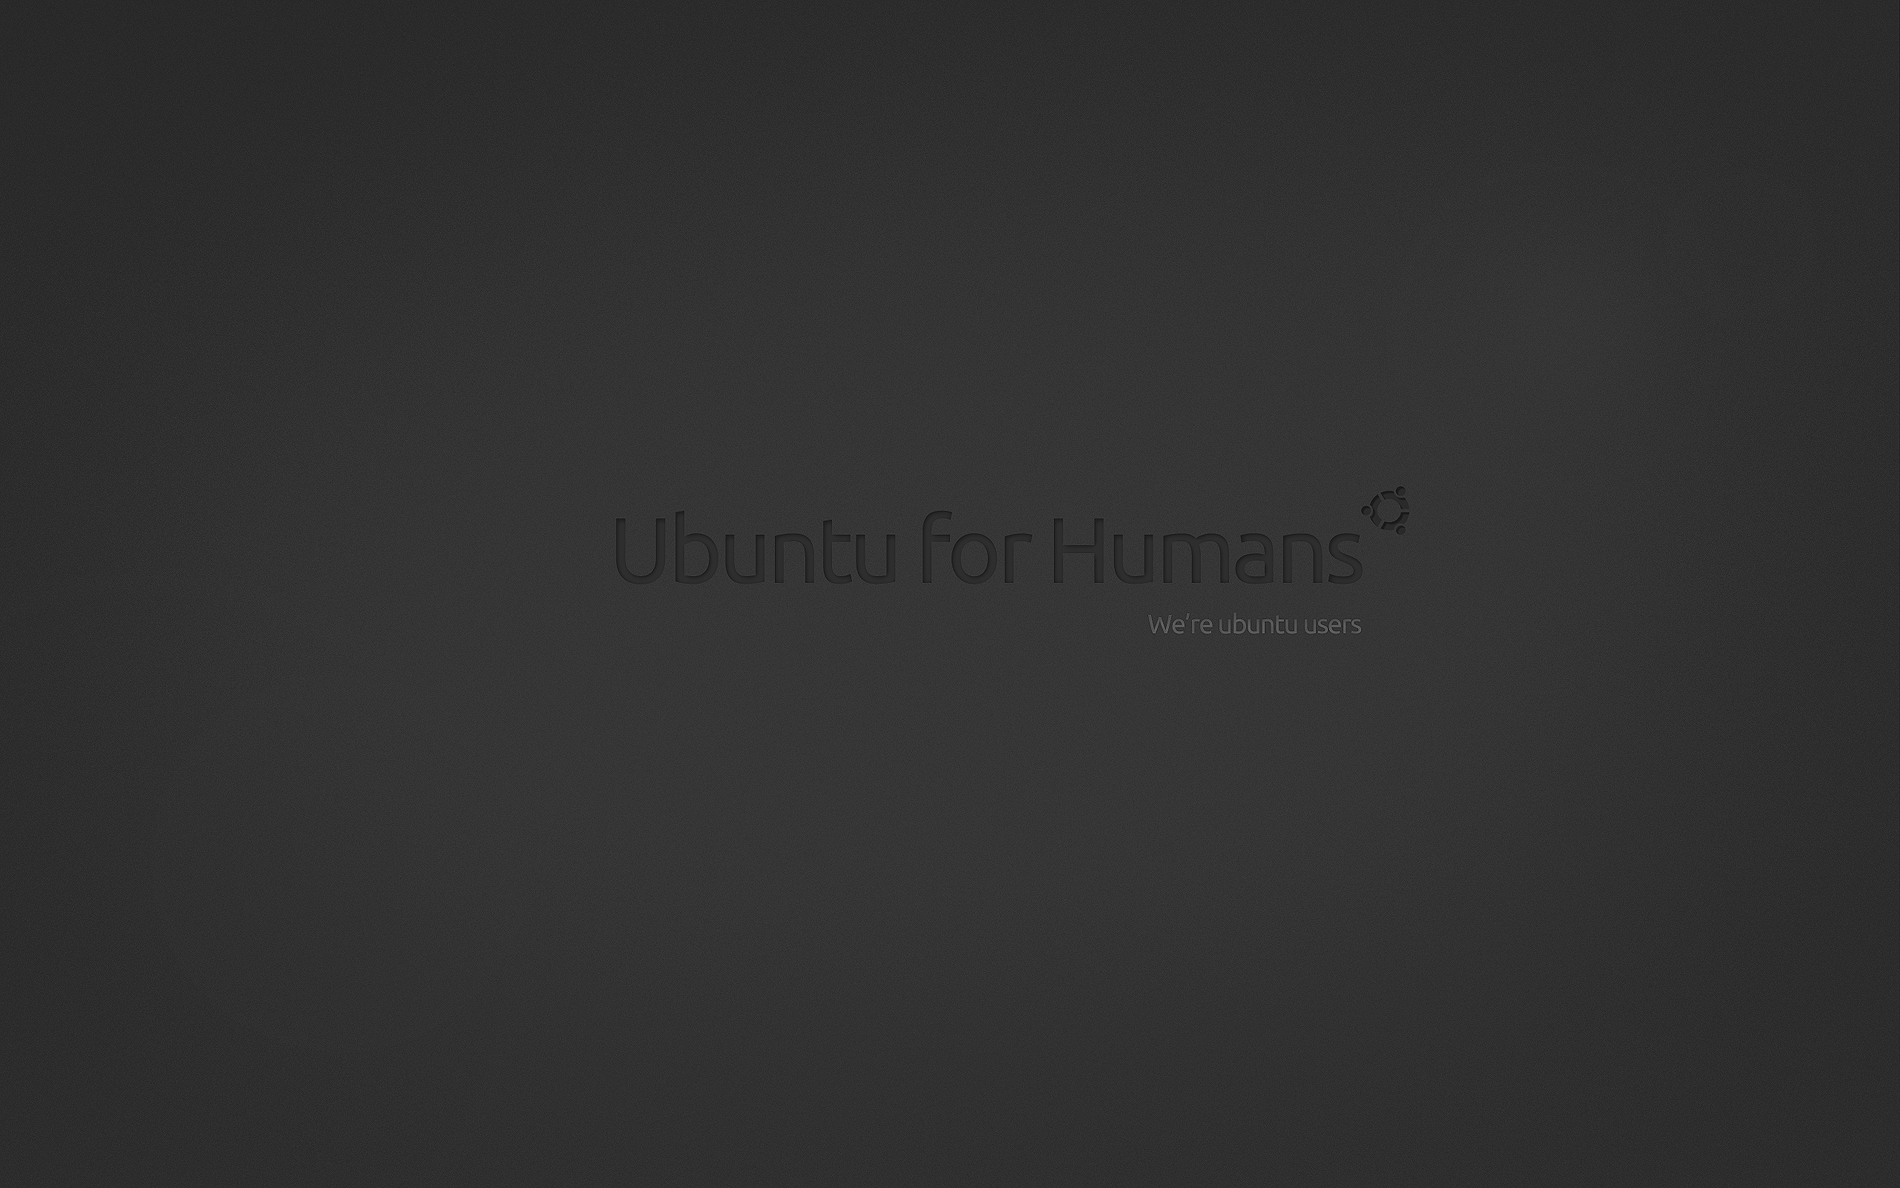 Ubuntu_for_Humans_sexy black by Felipi